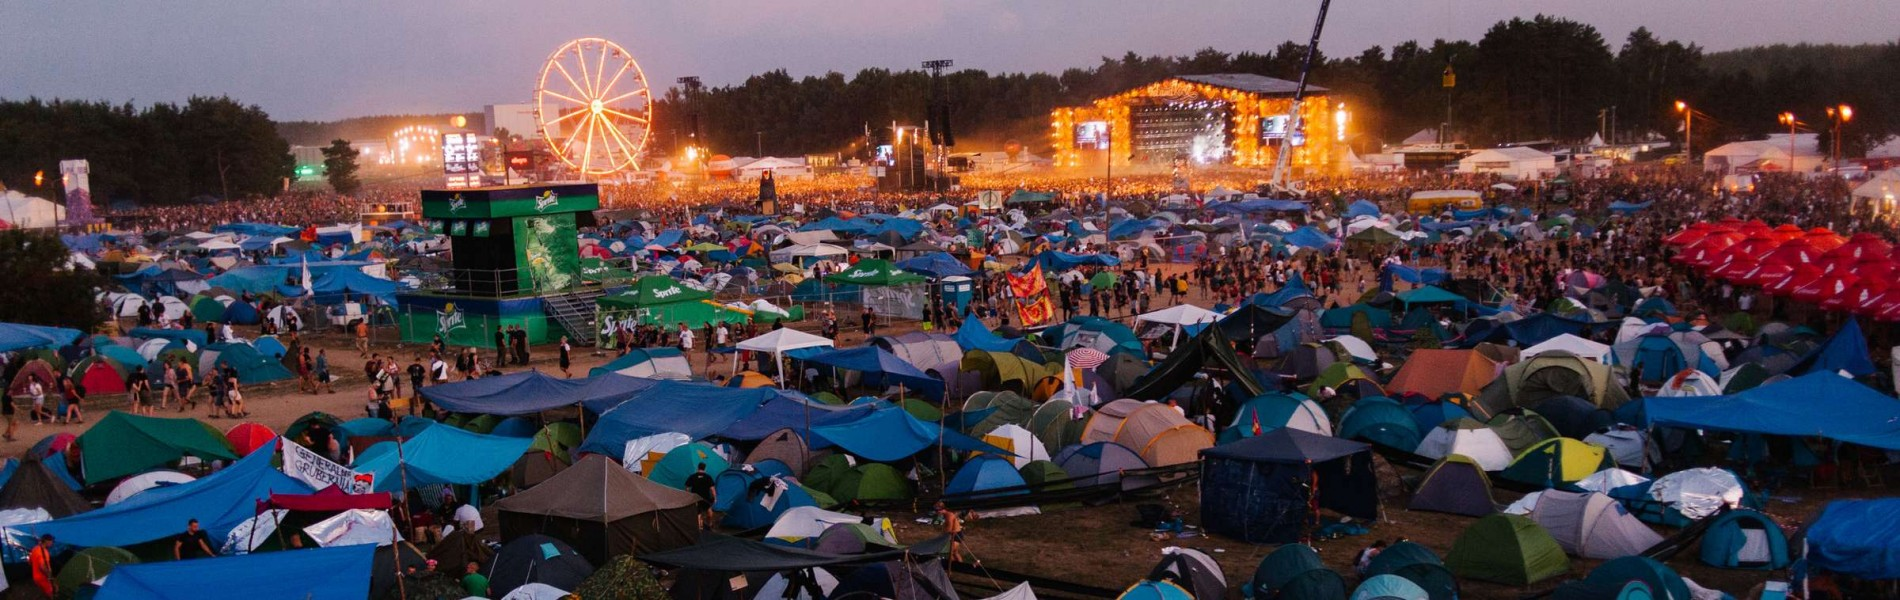 Photographs from Pol'And'Rock Festival in Poland